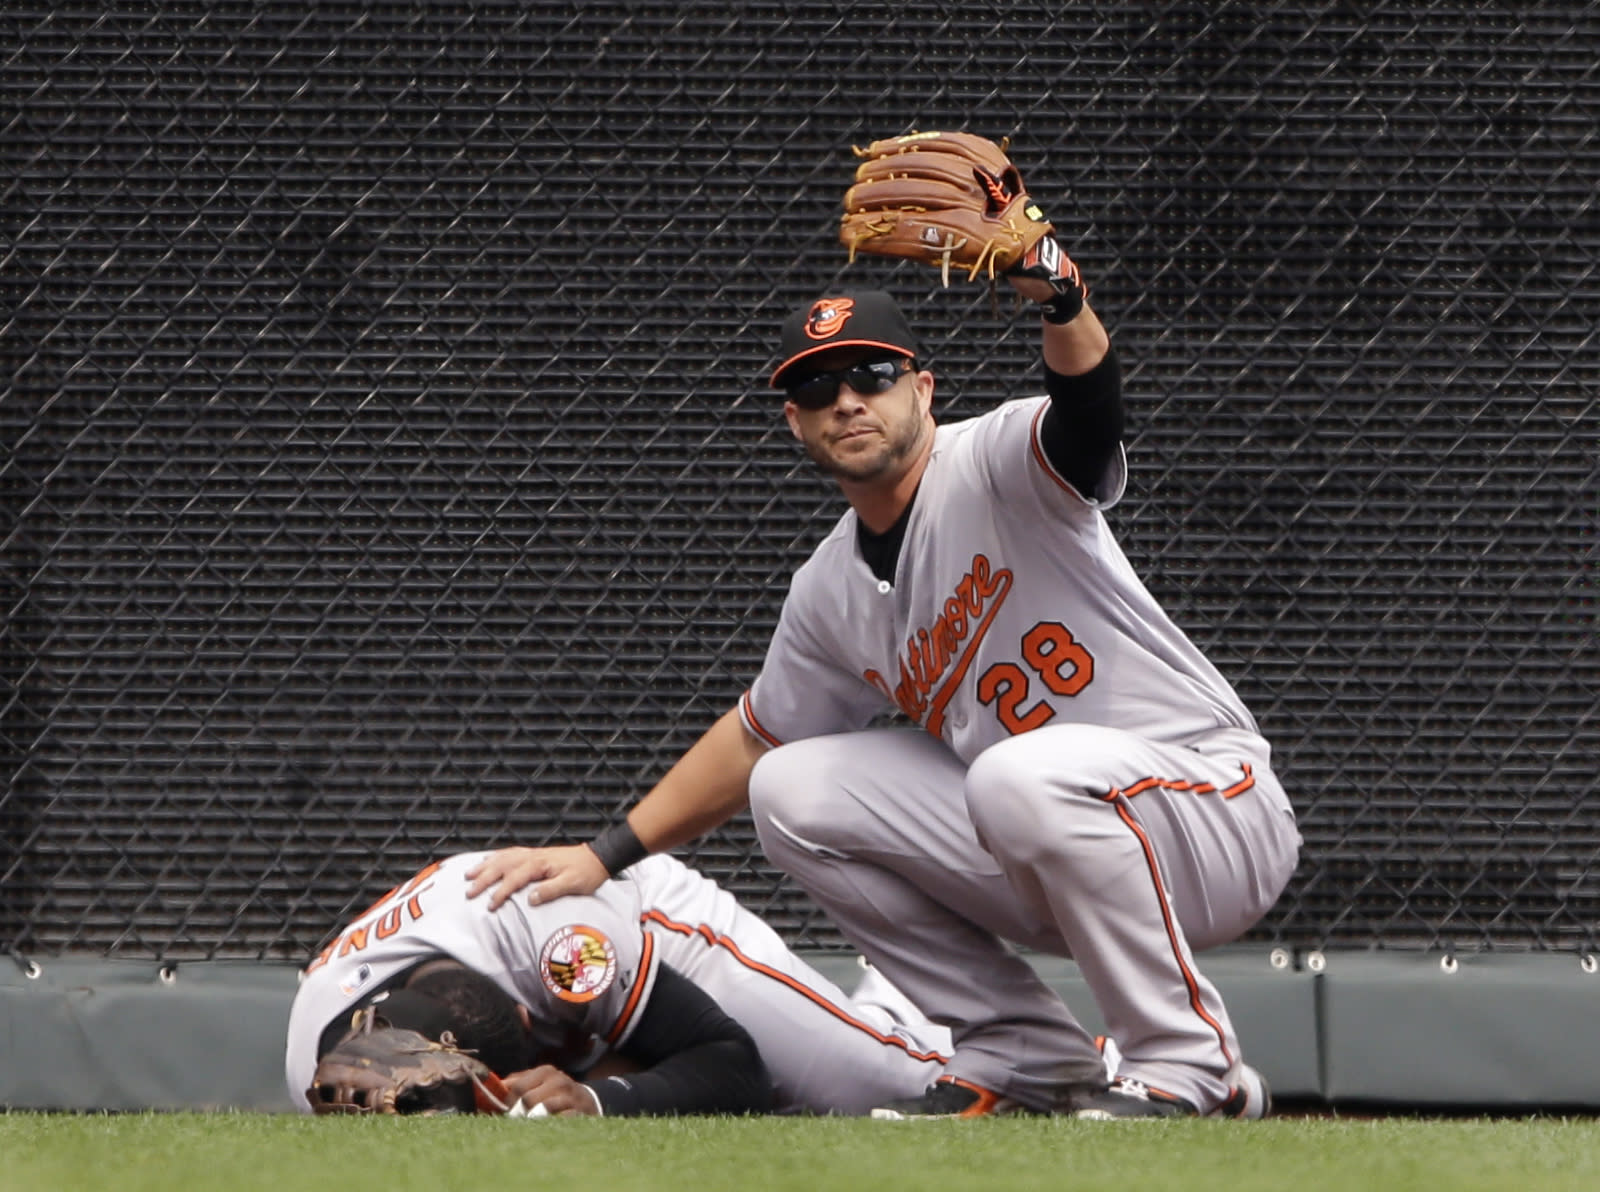 LEADING OFF: Orioles CF Jones gets checked, Kershaw starts